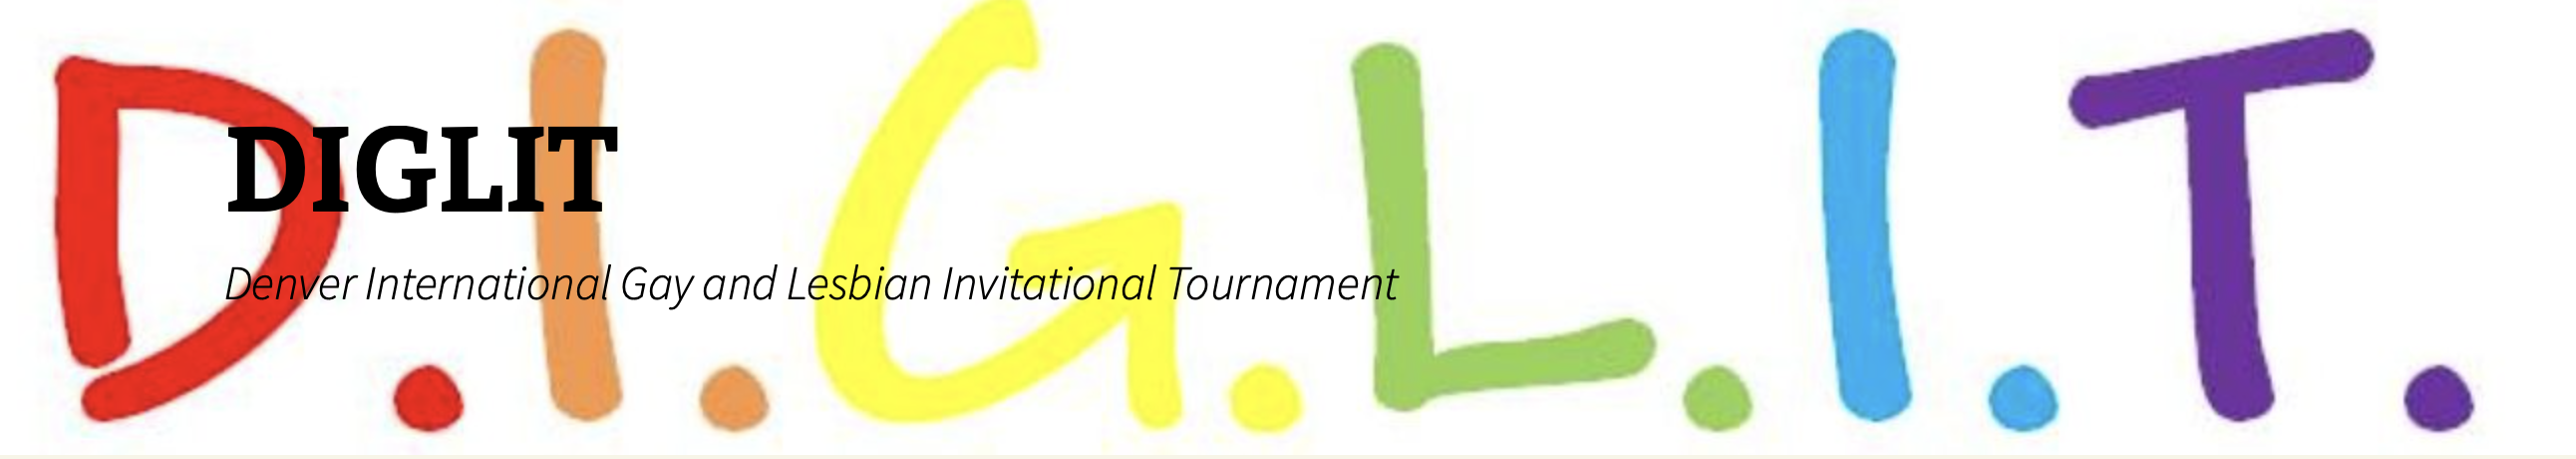 Denver International Gay and Lesbian Invitational Tournament